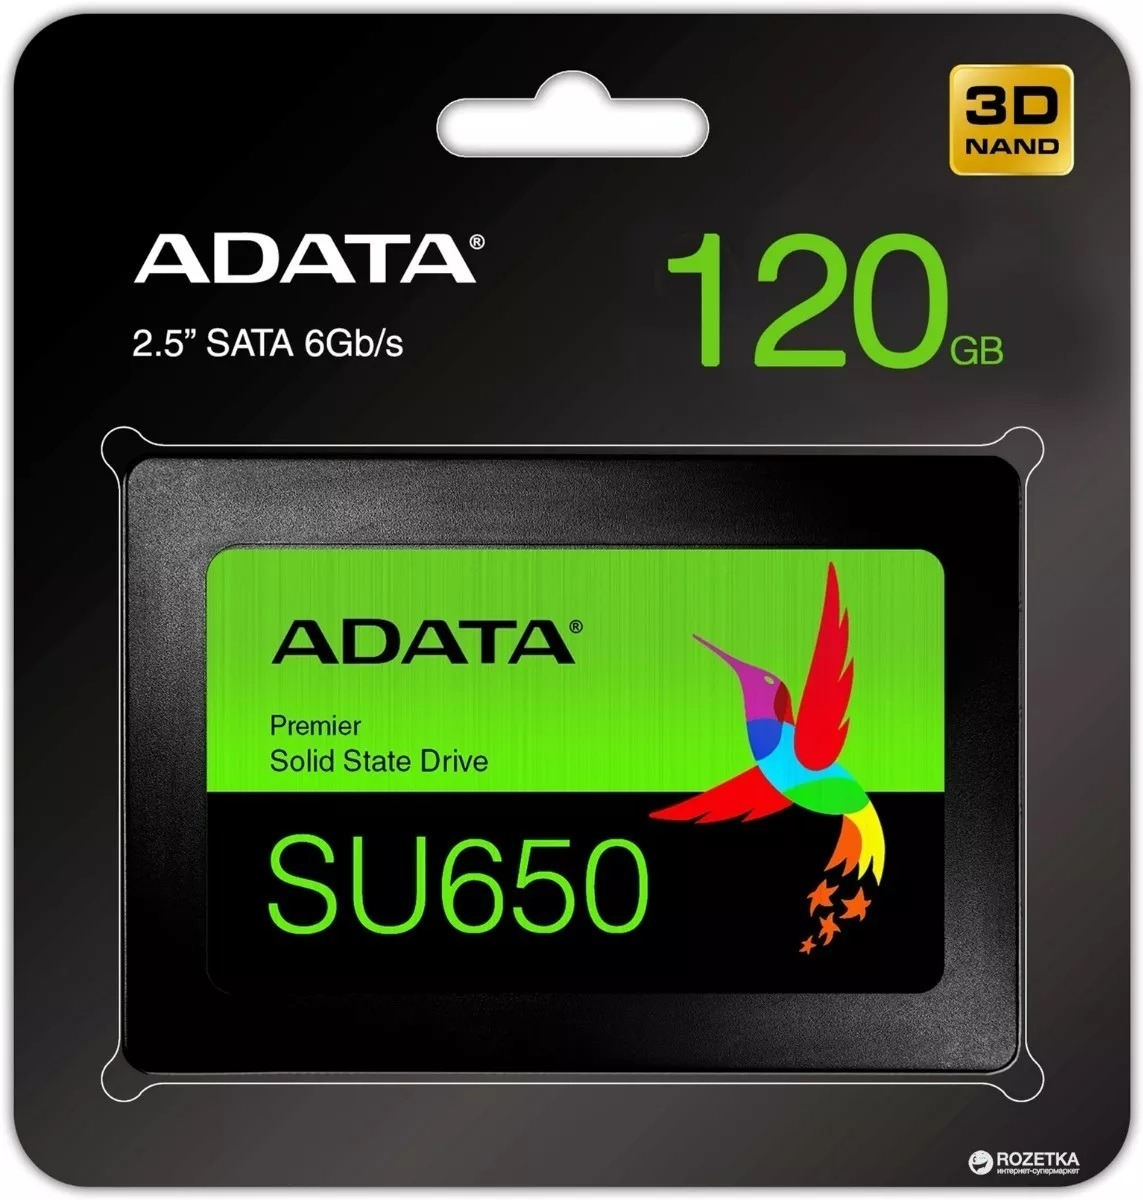 Disco solido Adata de 120GB